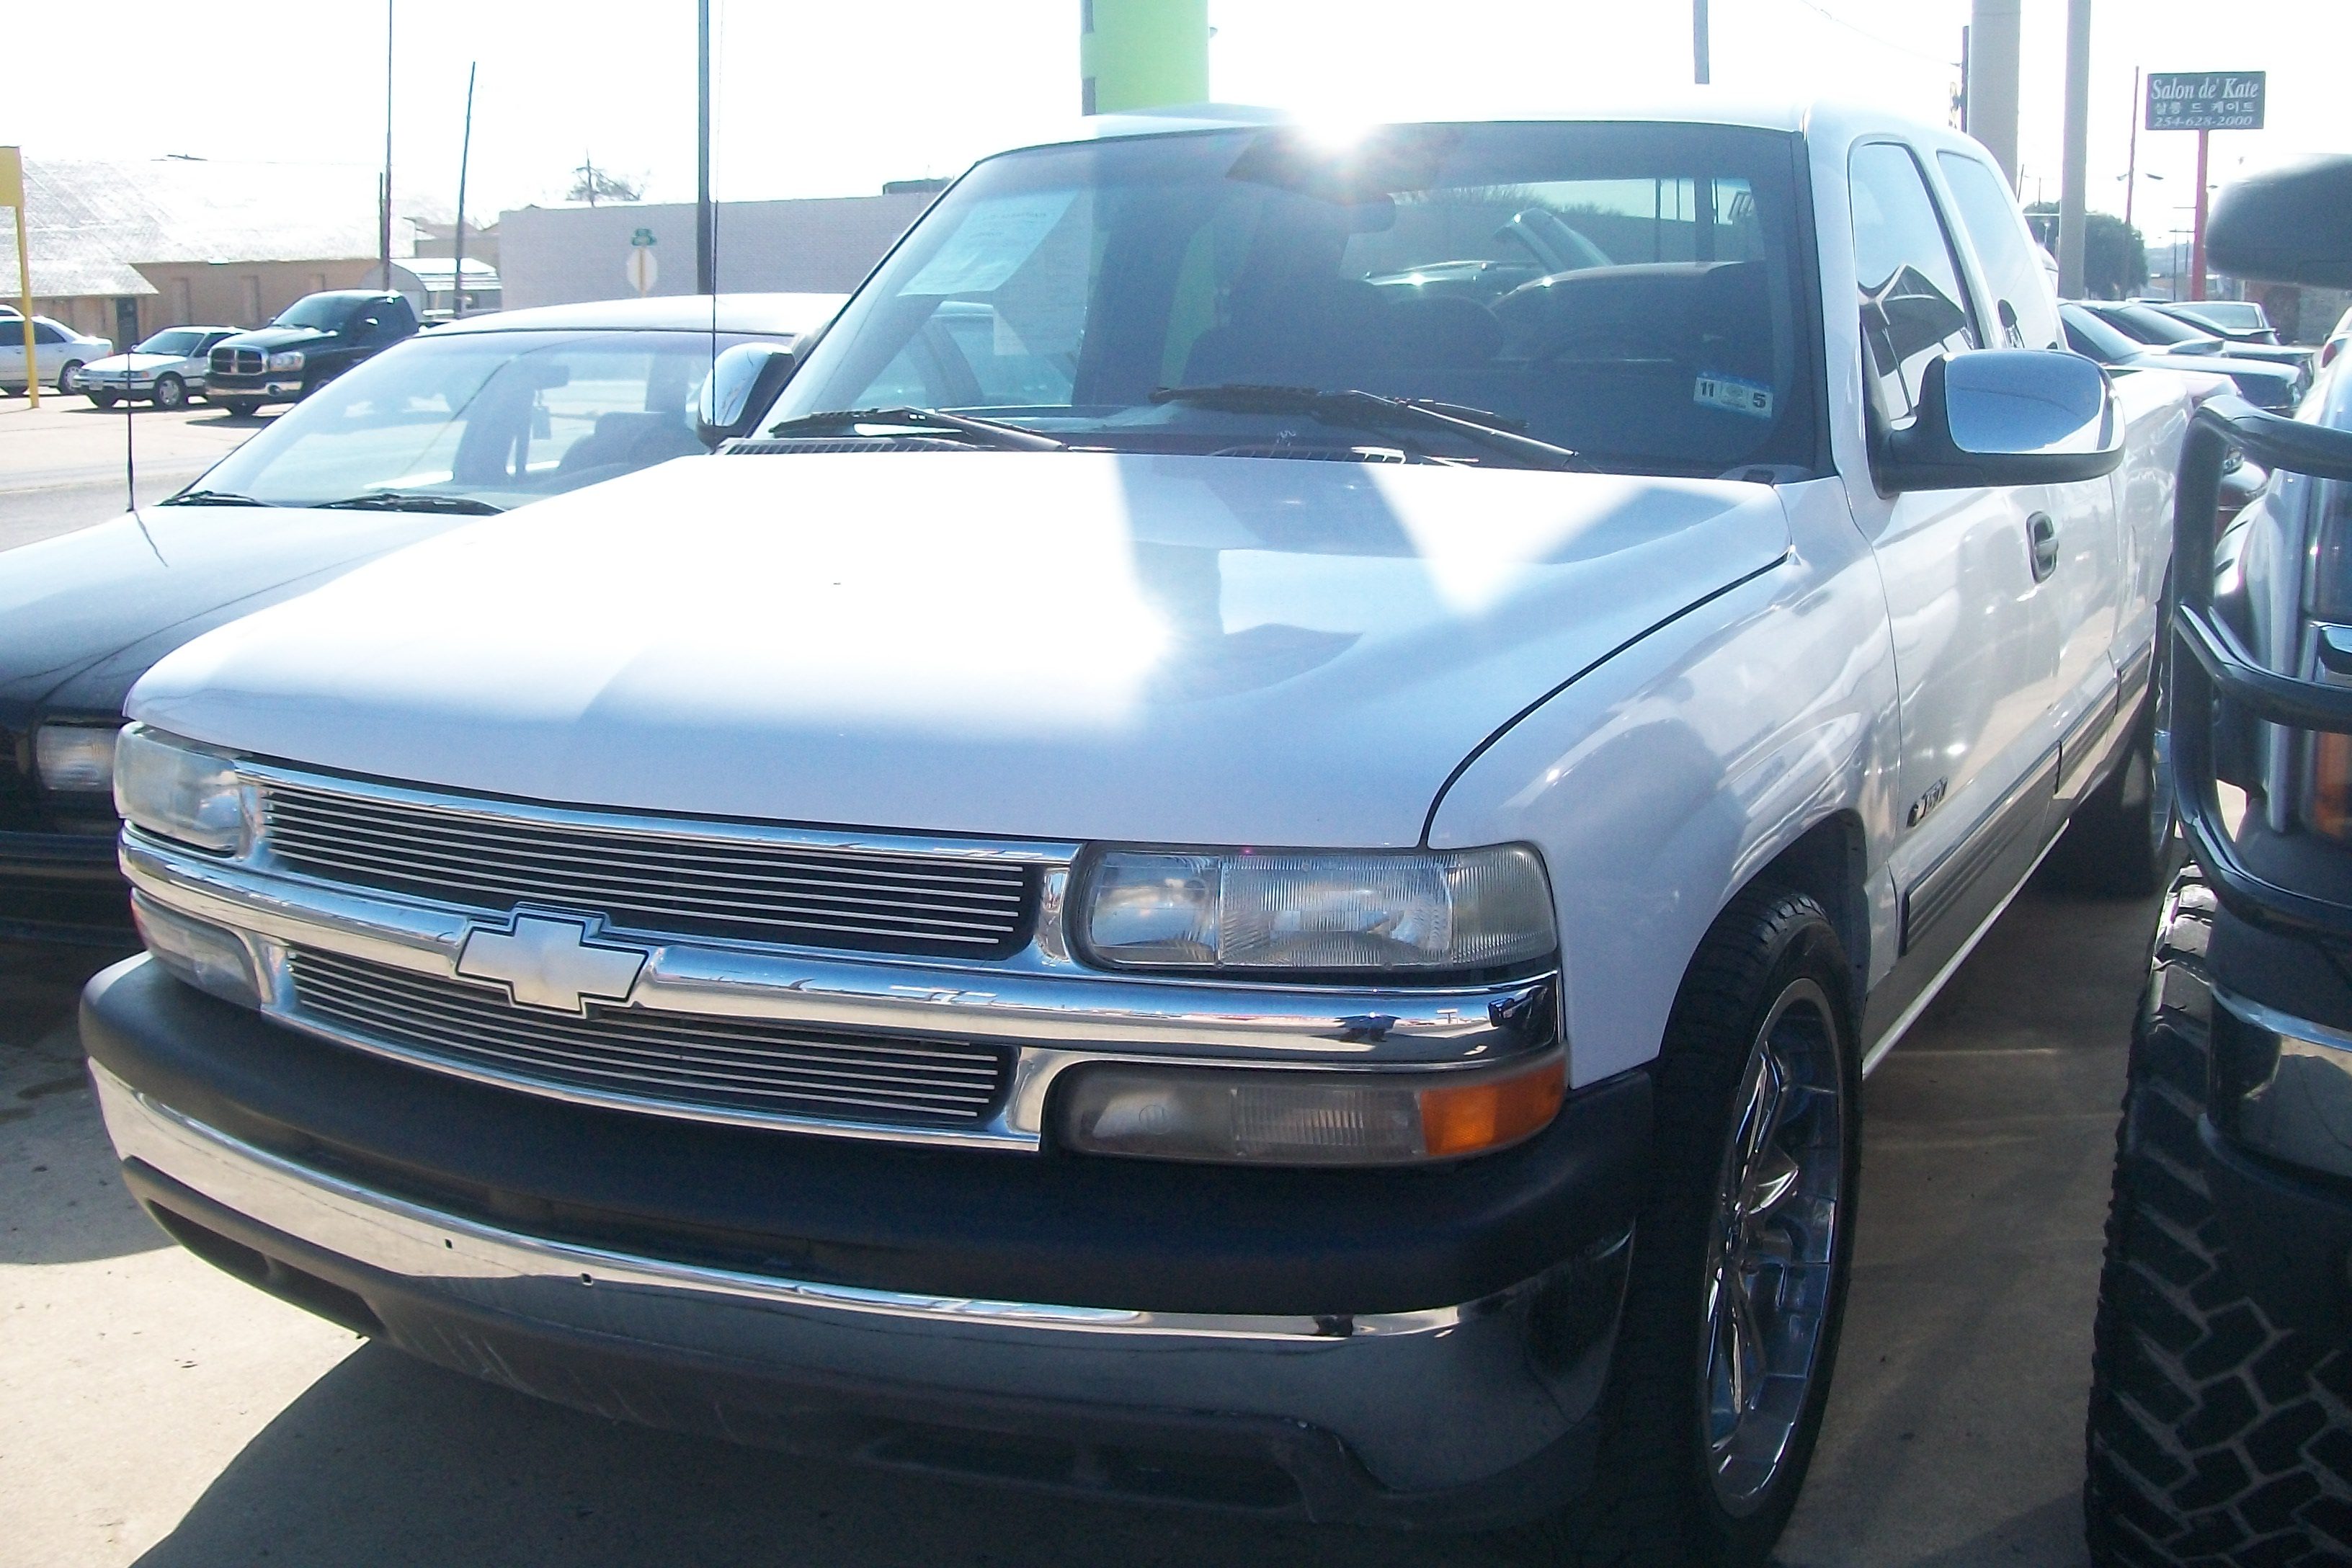 National Car Sales >> National Auto Sales 907 N 8th St Killeen Tx 76541 Yp Com